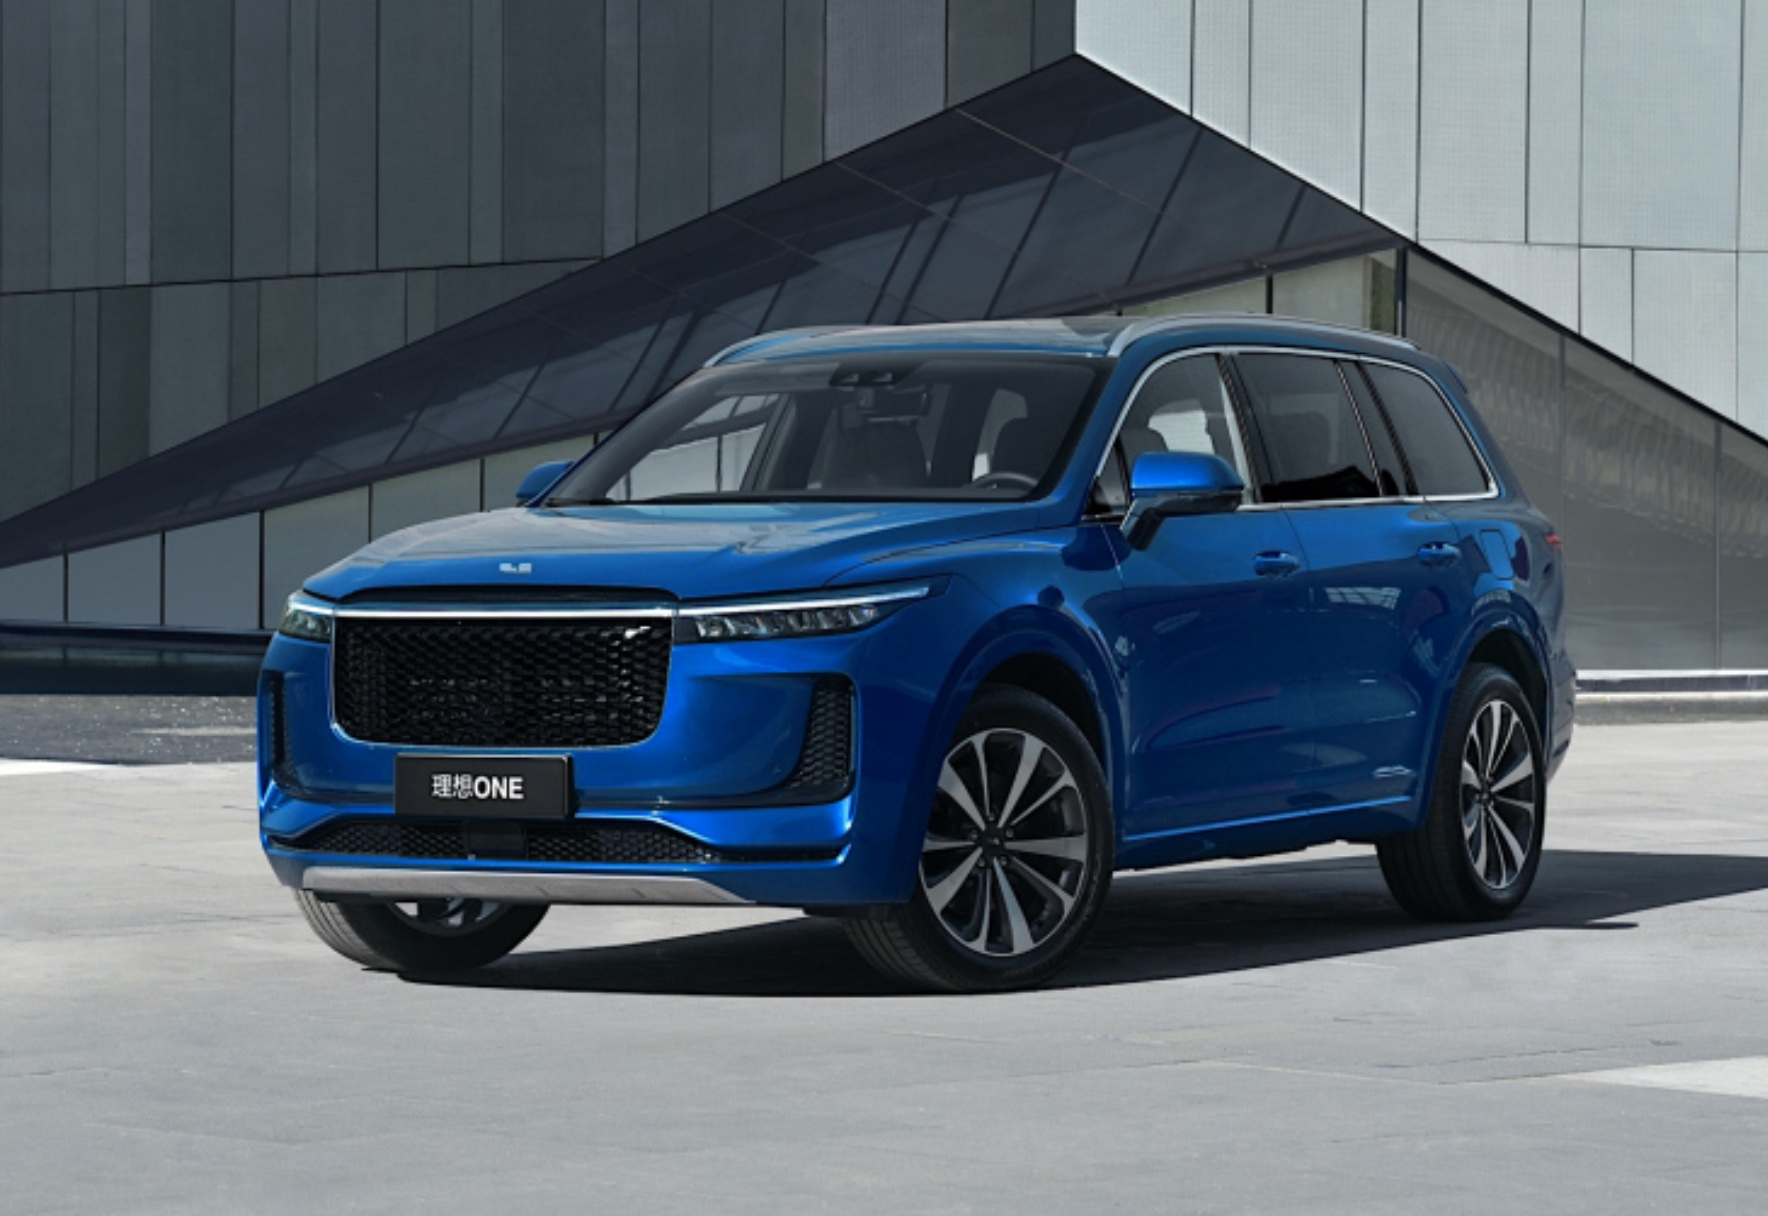 Li ONE overtakes NIO ES6 to have most insurance registrations among new energy SUVs in China-cnTechPost